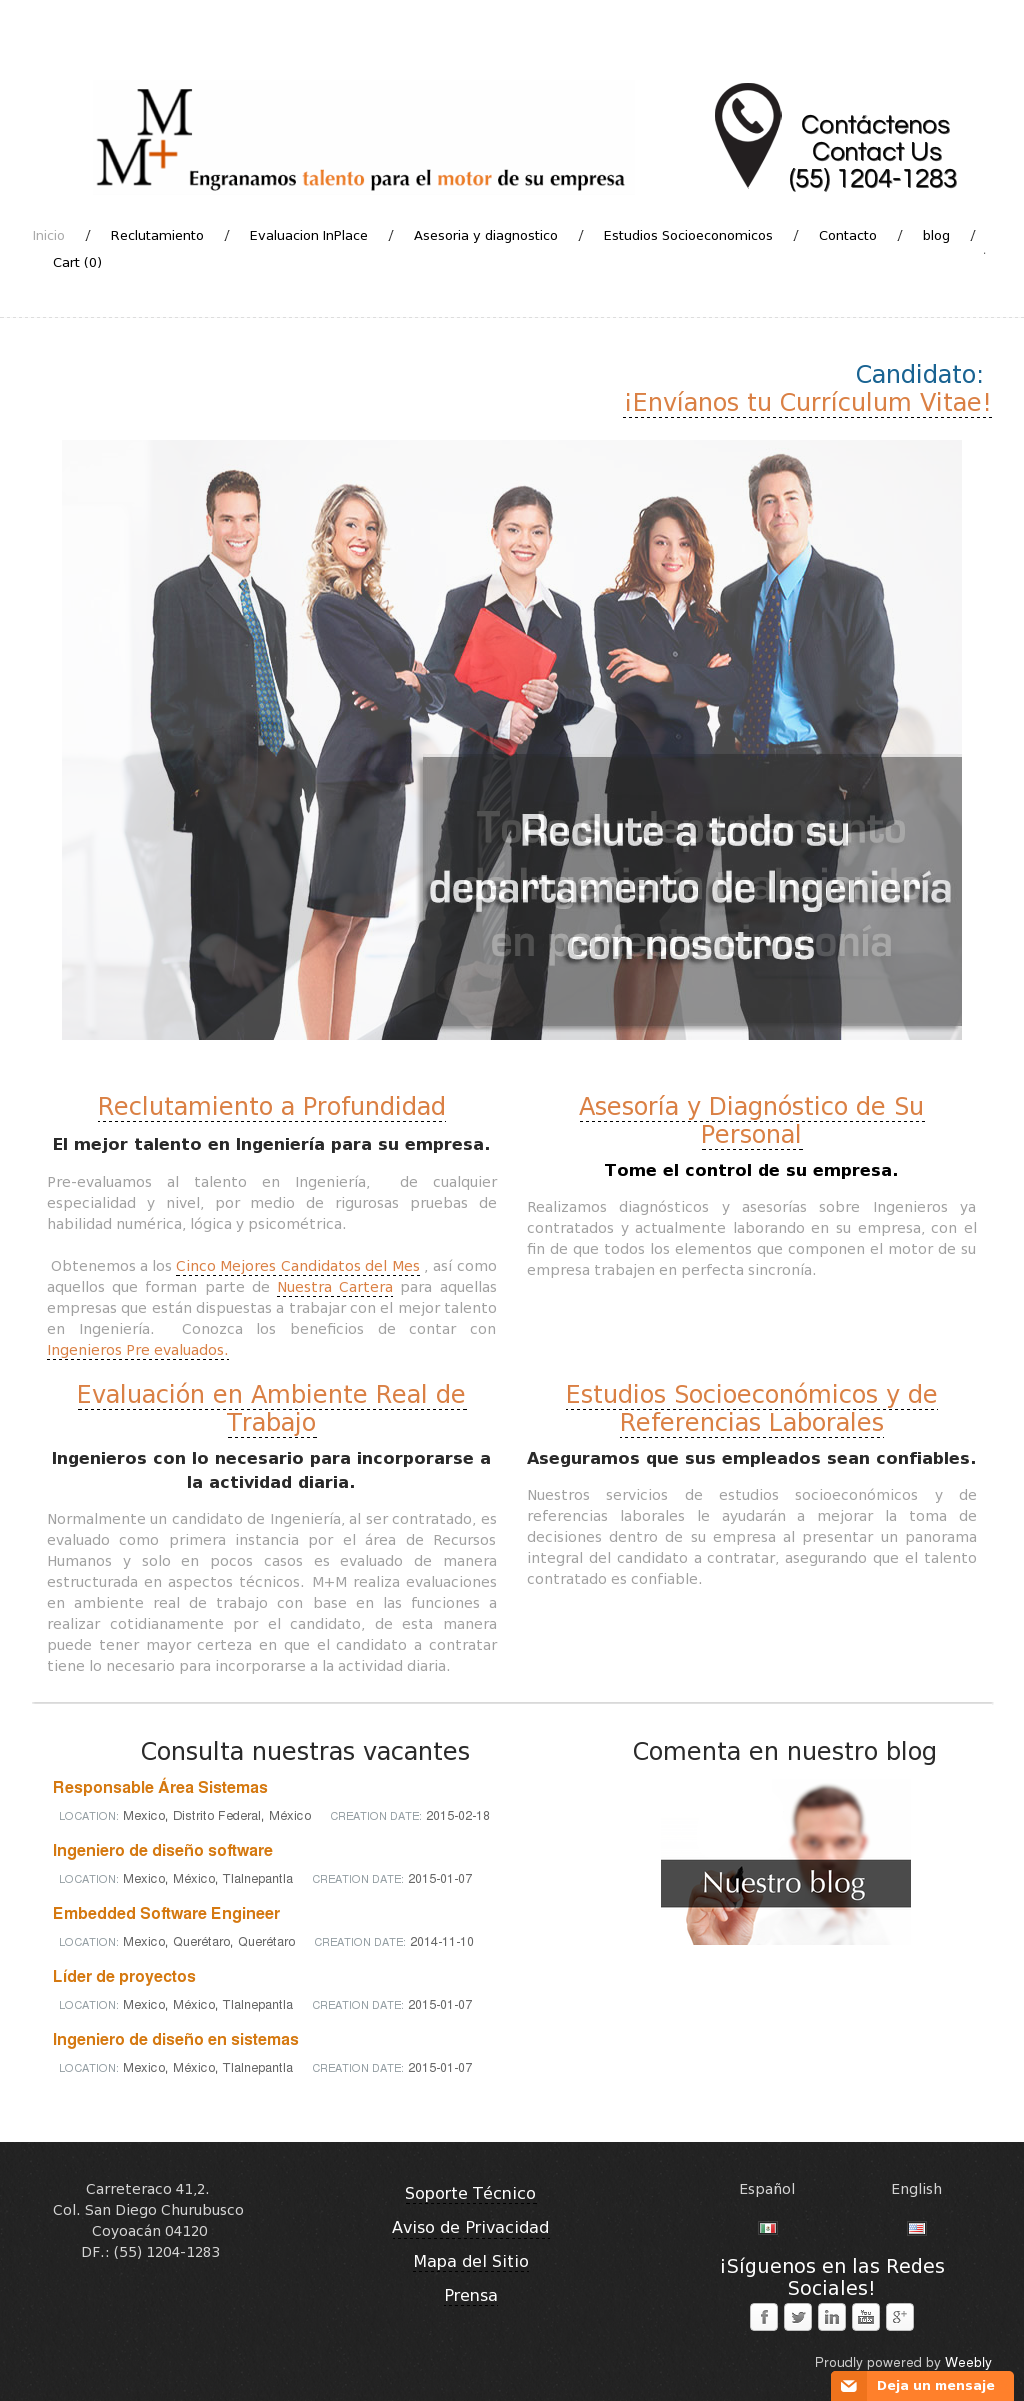 M+m Reclutamiento Especializado En Ingenieria Competitors, Revenue ...